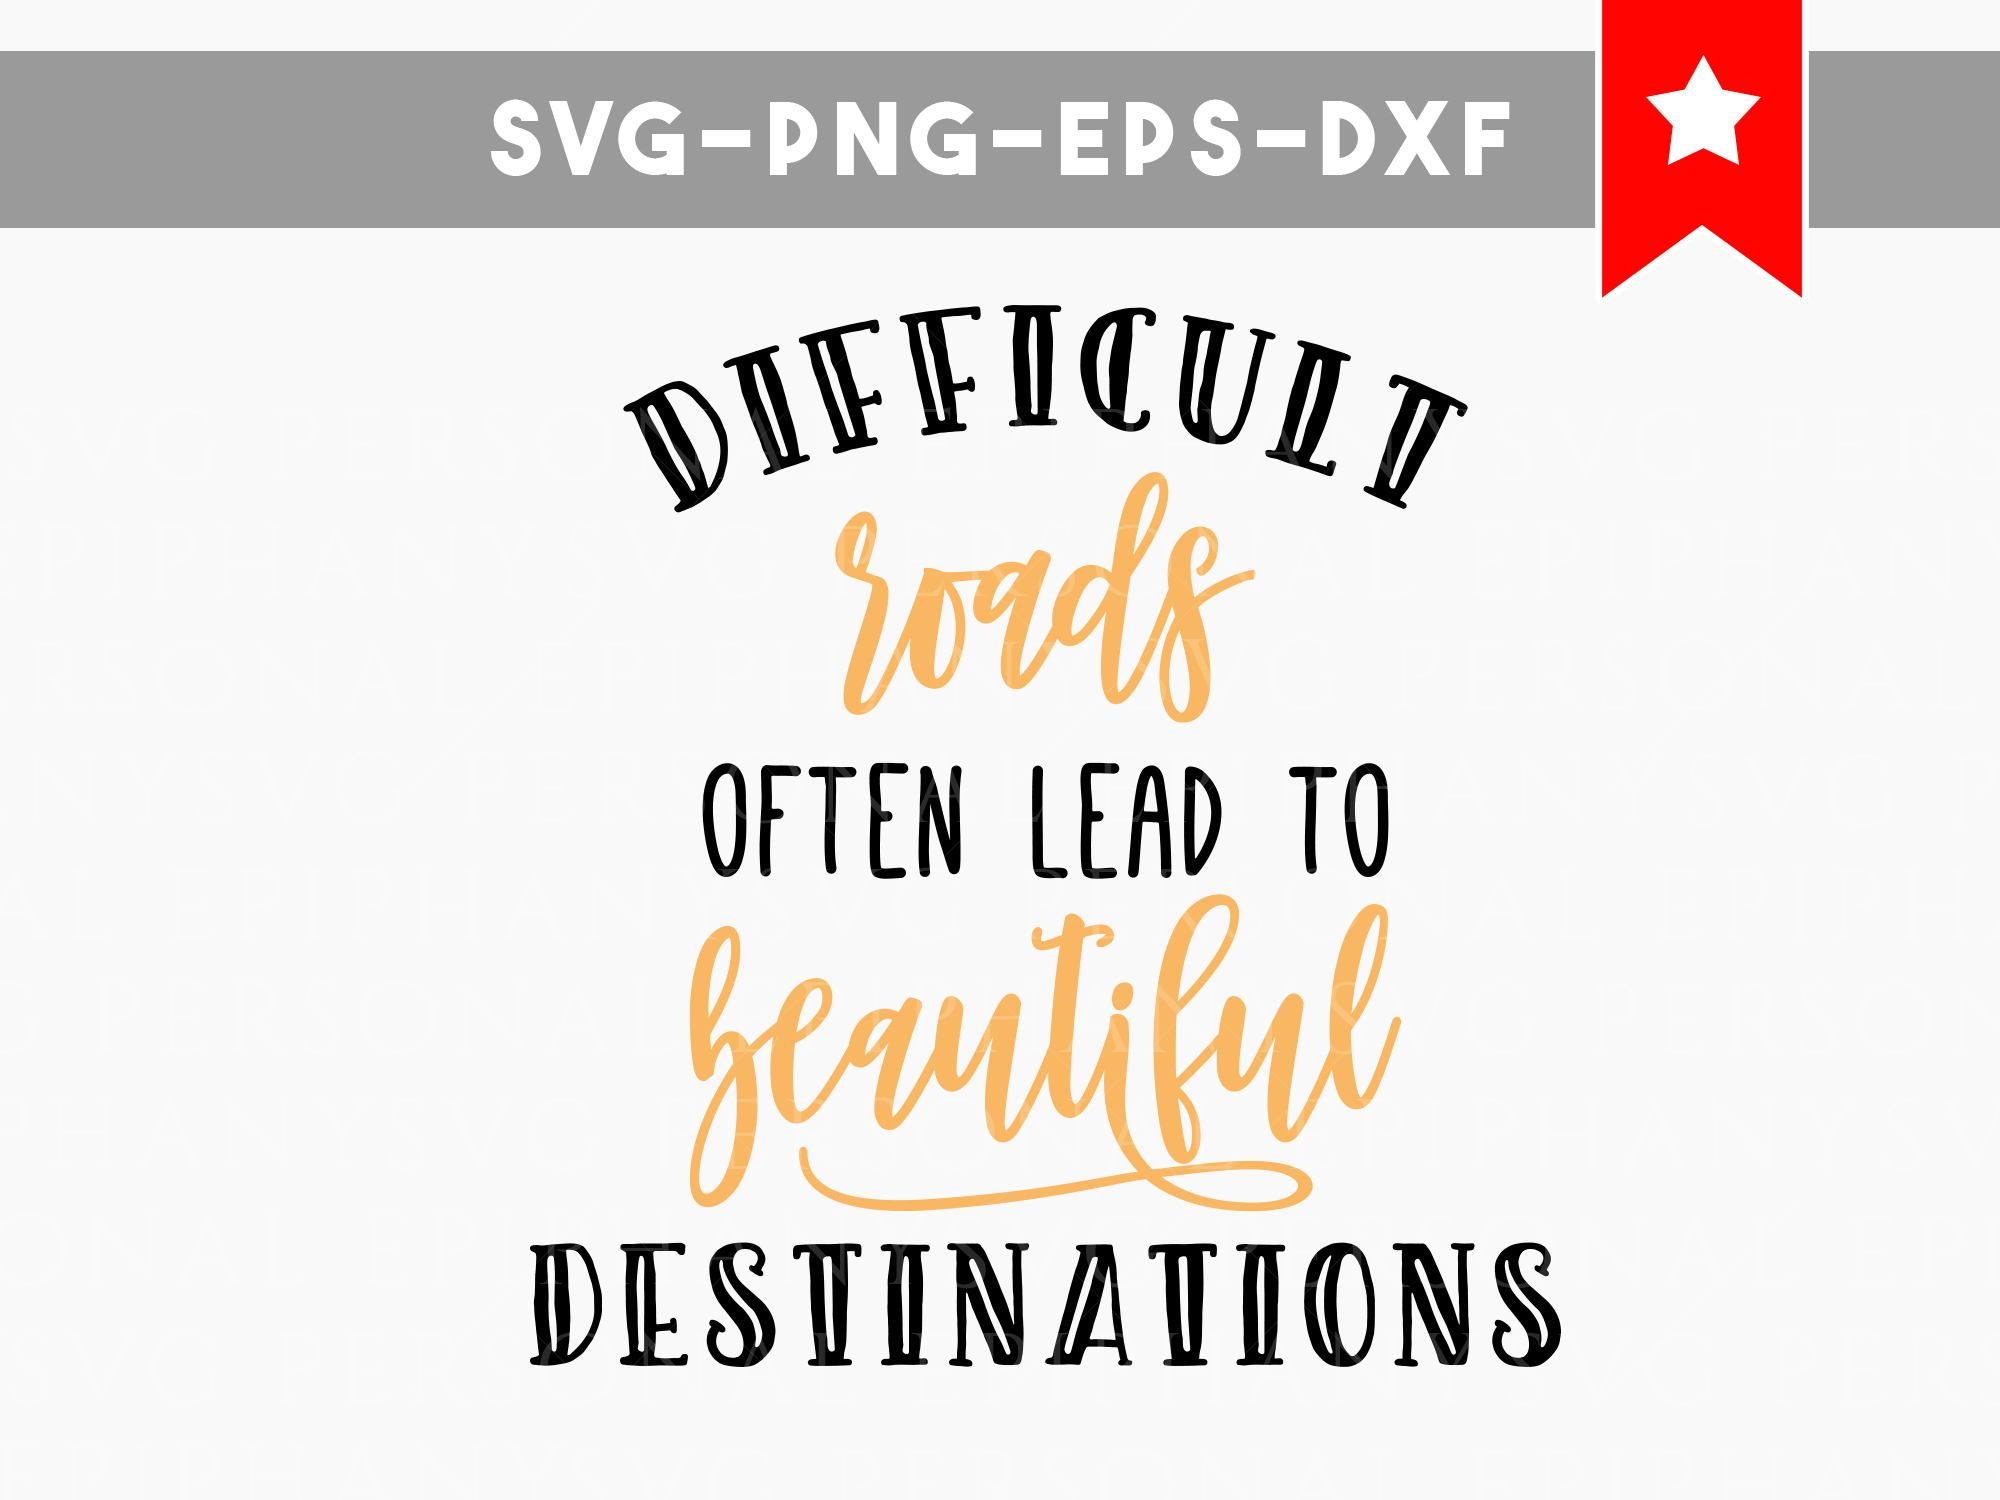 Signs Quotes Difficult Road Beautiful Destination Svg Motivational Quotes Svg